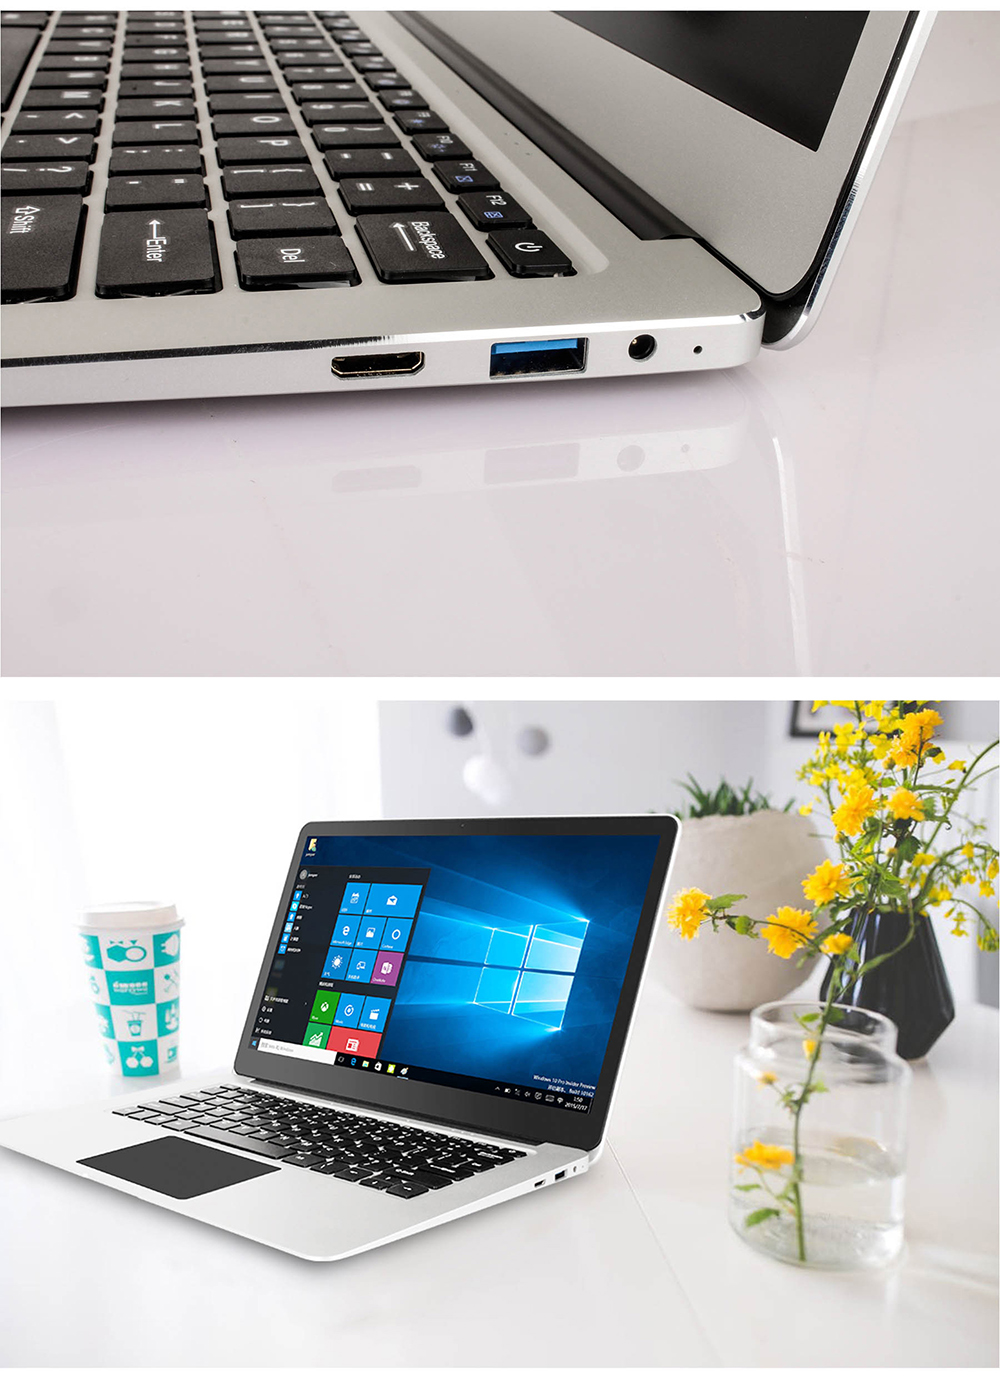 16  Jumper EZbook three Professional laptops 13.three Inch tablets Intel Apollo N3450 Quad Core 6GB DDR3 64GB eMMC Home windows 10 pocket book computador HTB1